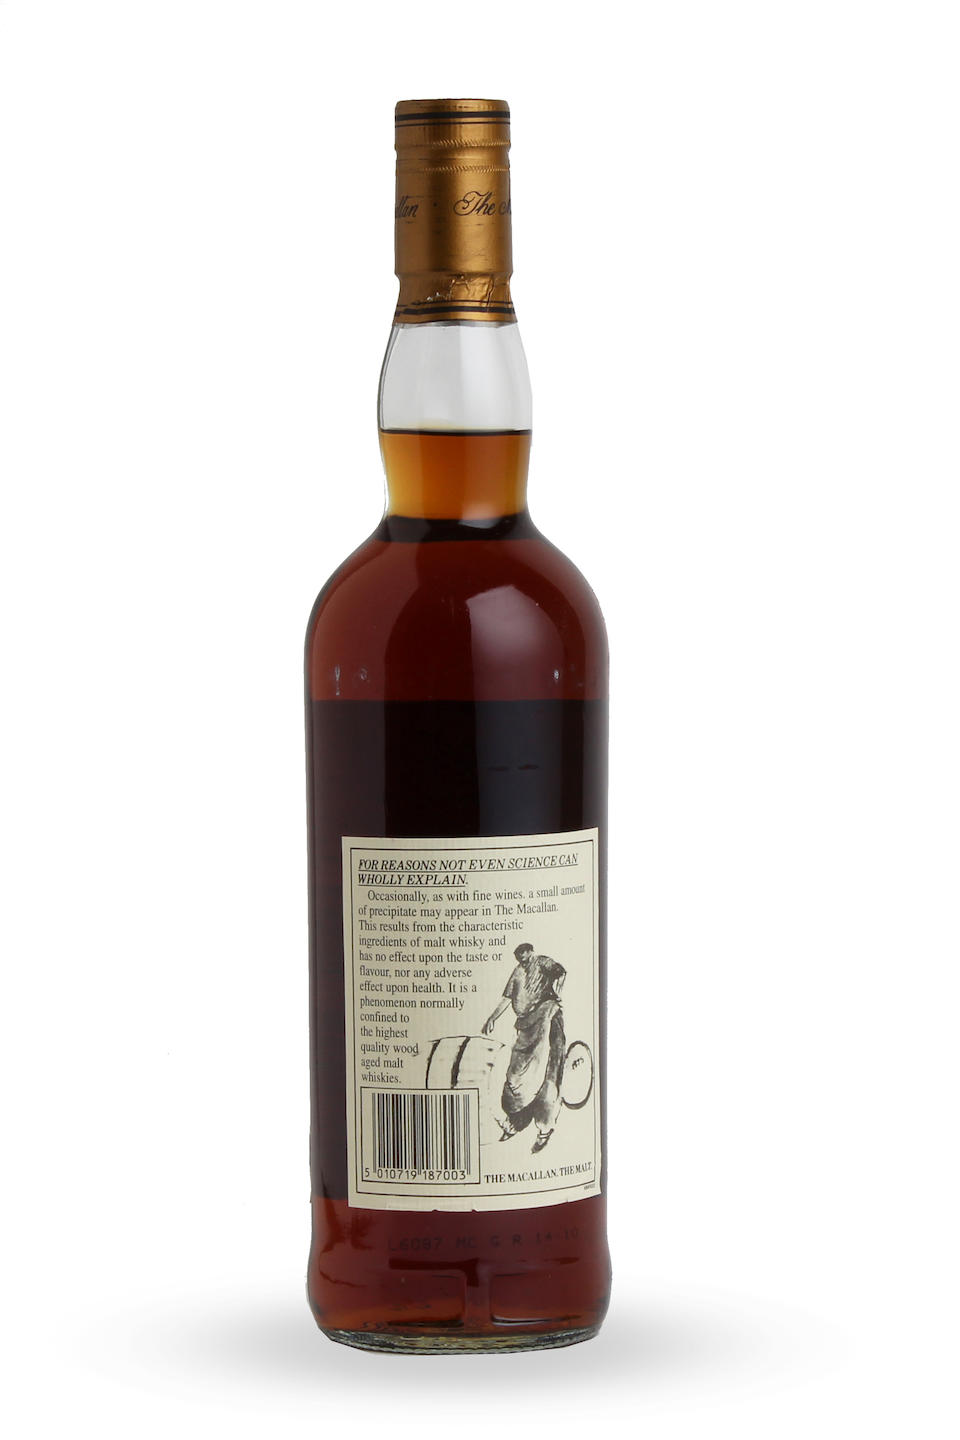 The Macallan-18 year old-1978